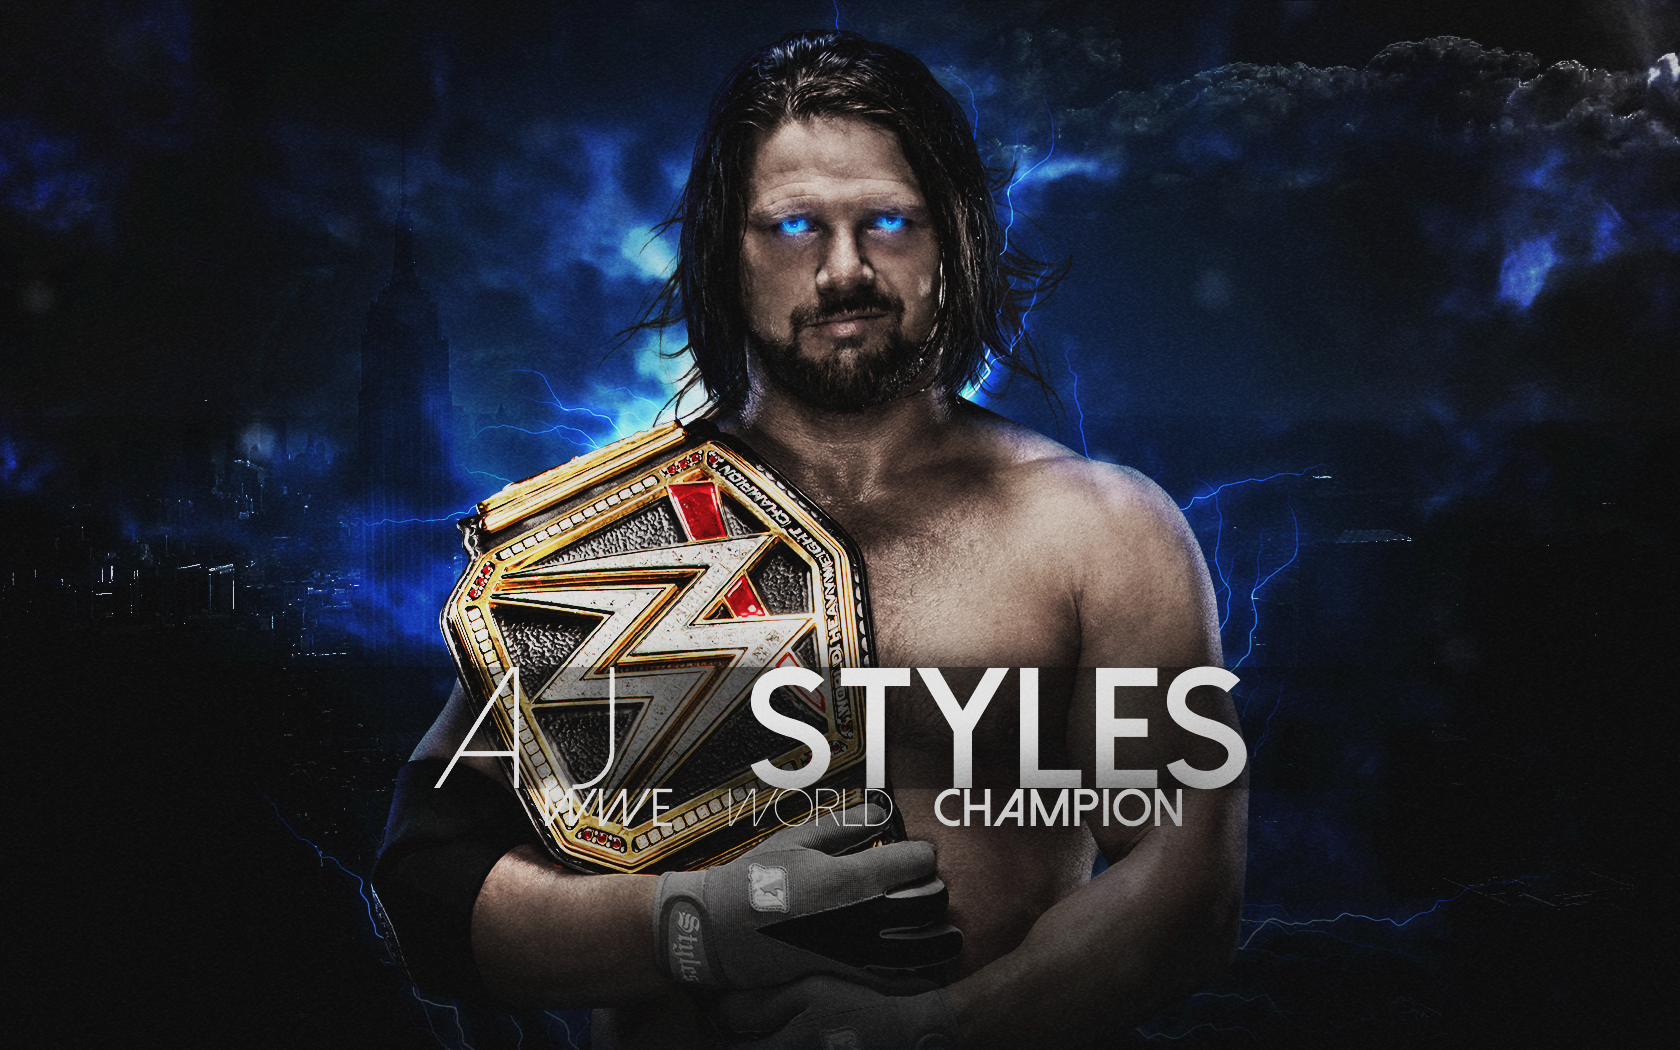 Aj Styles Wallpaper 1080p HD Wallpapers Download Free Images Wallpaper [1000image.com]